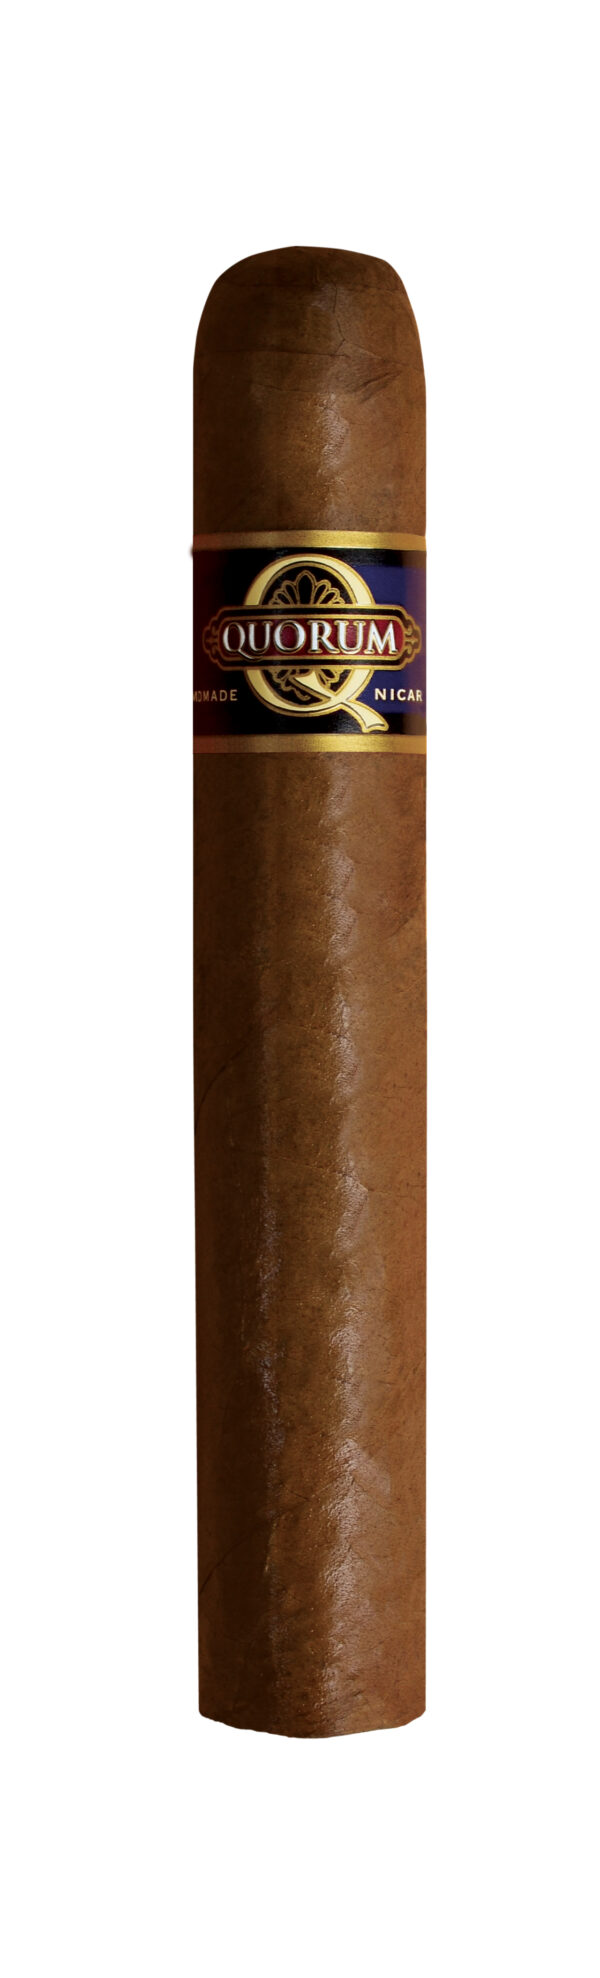 n just a few short years, Quorum Nicaraguan Handmades have become the No. 1 selling imported handmade bundle cigar in the world. J.C. Newman's dedication to quality has been materialized in these smooth, medium-bodied cigars available at a price accessible to even the most discriminating of wallets.